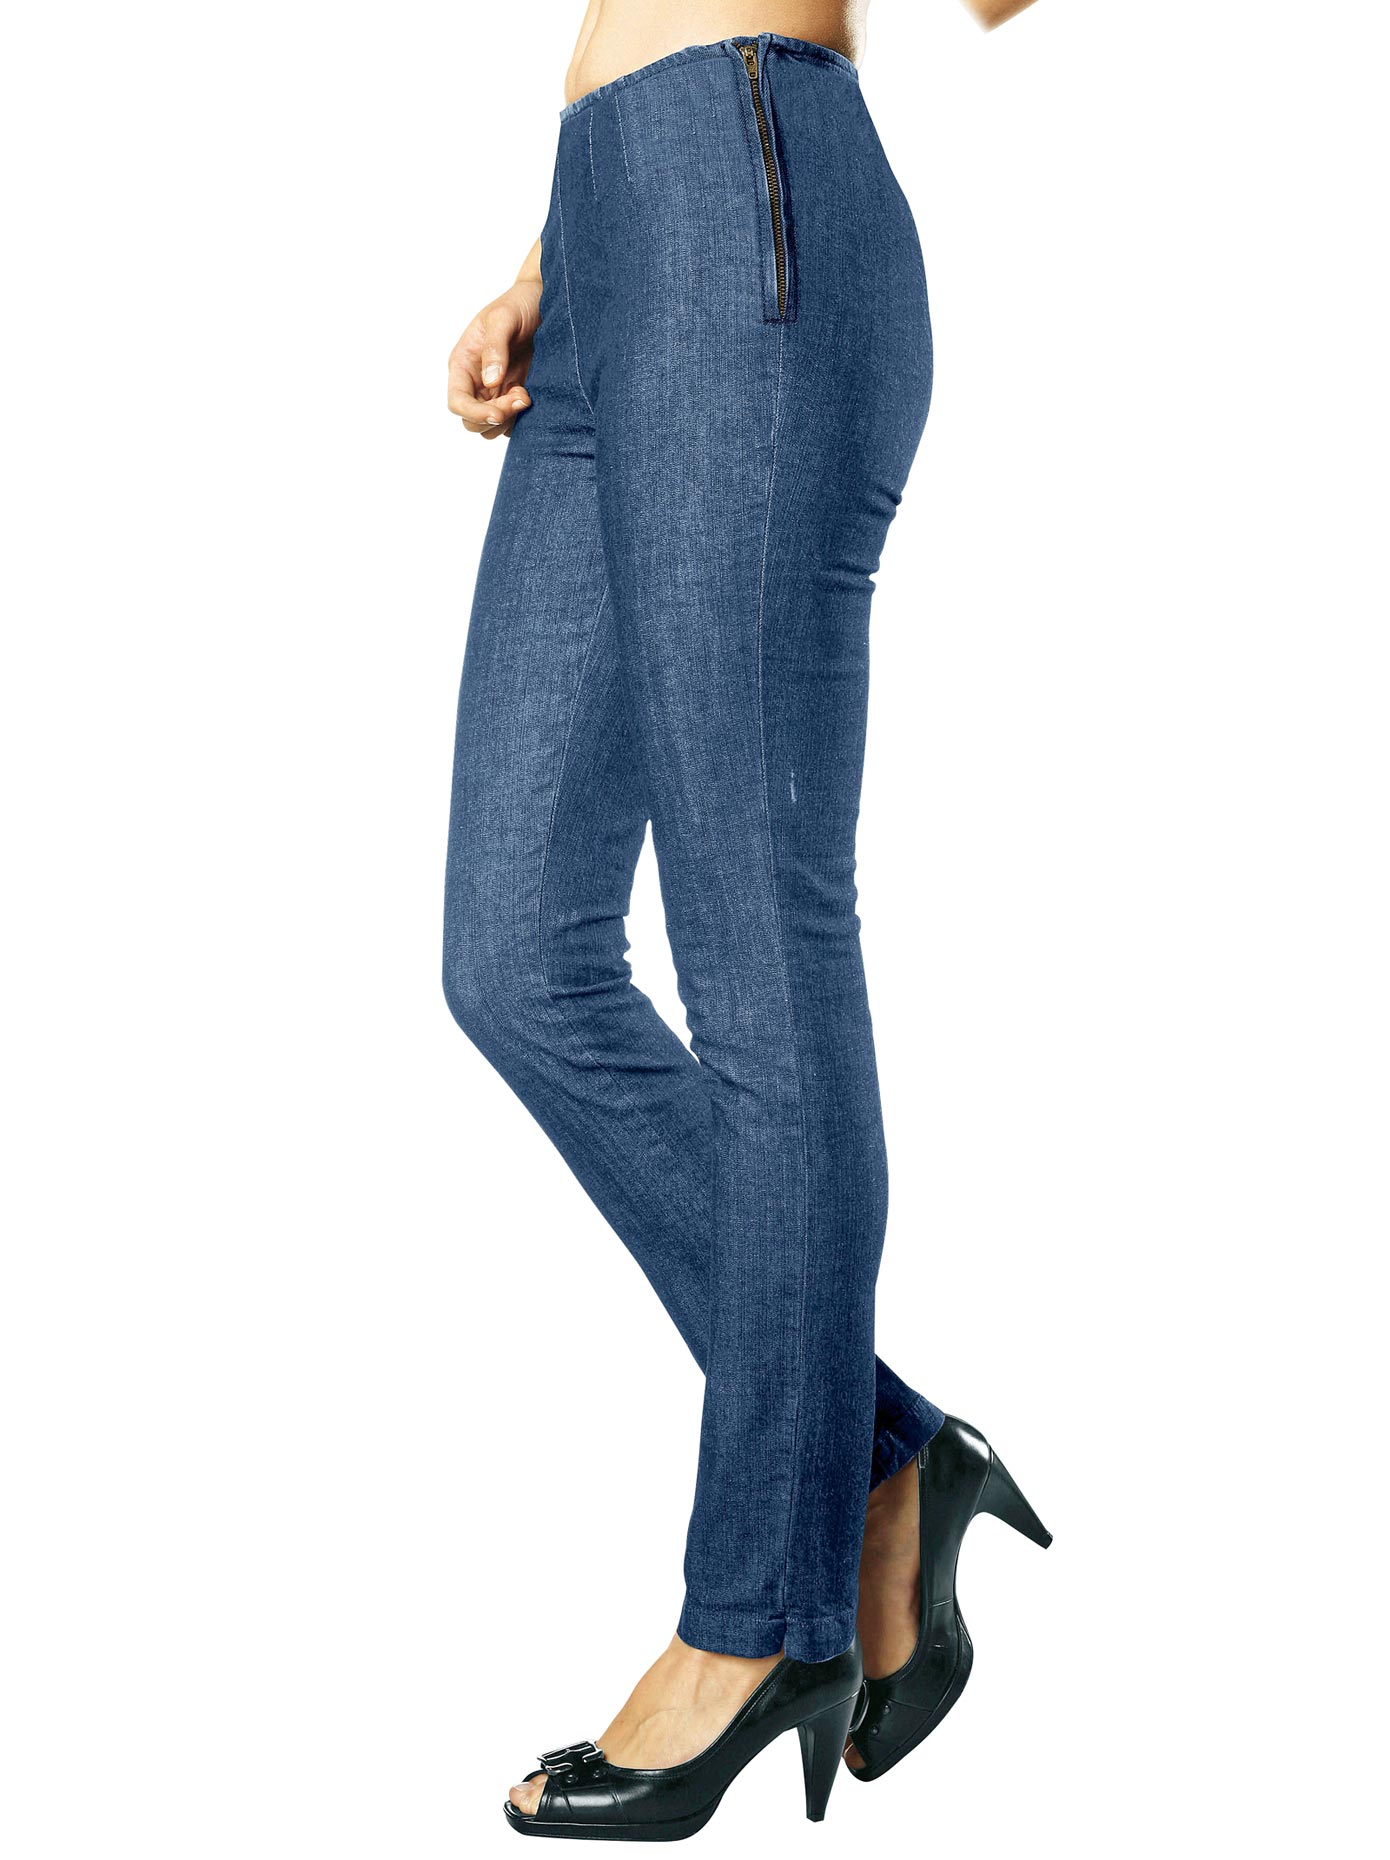 Image of Jeans, Aniston